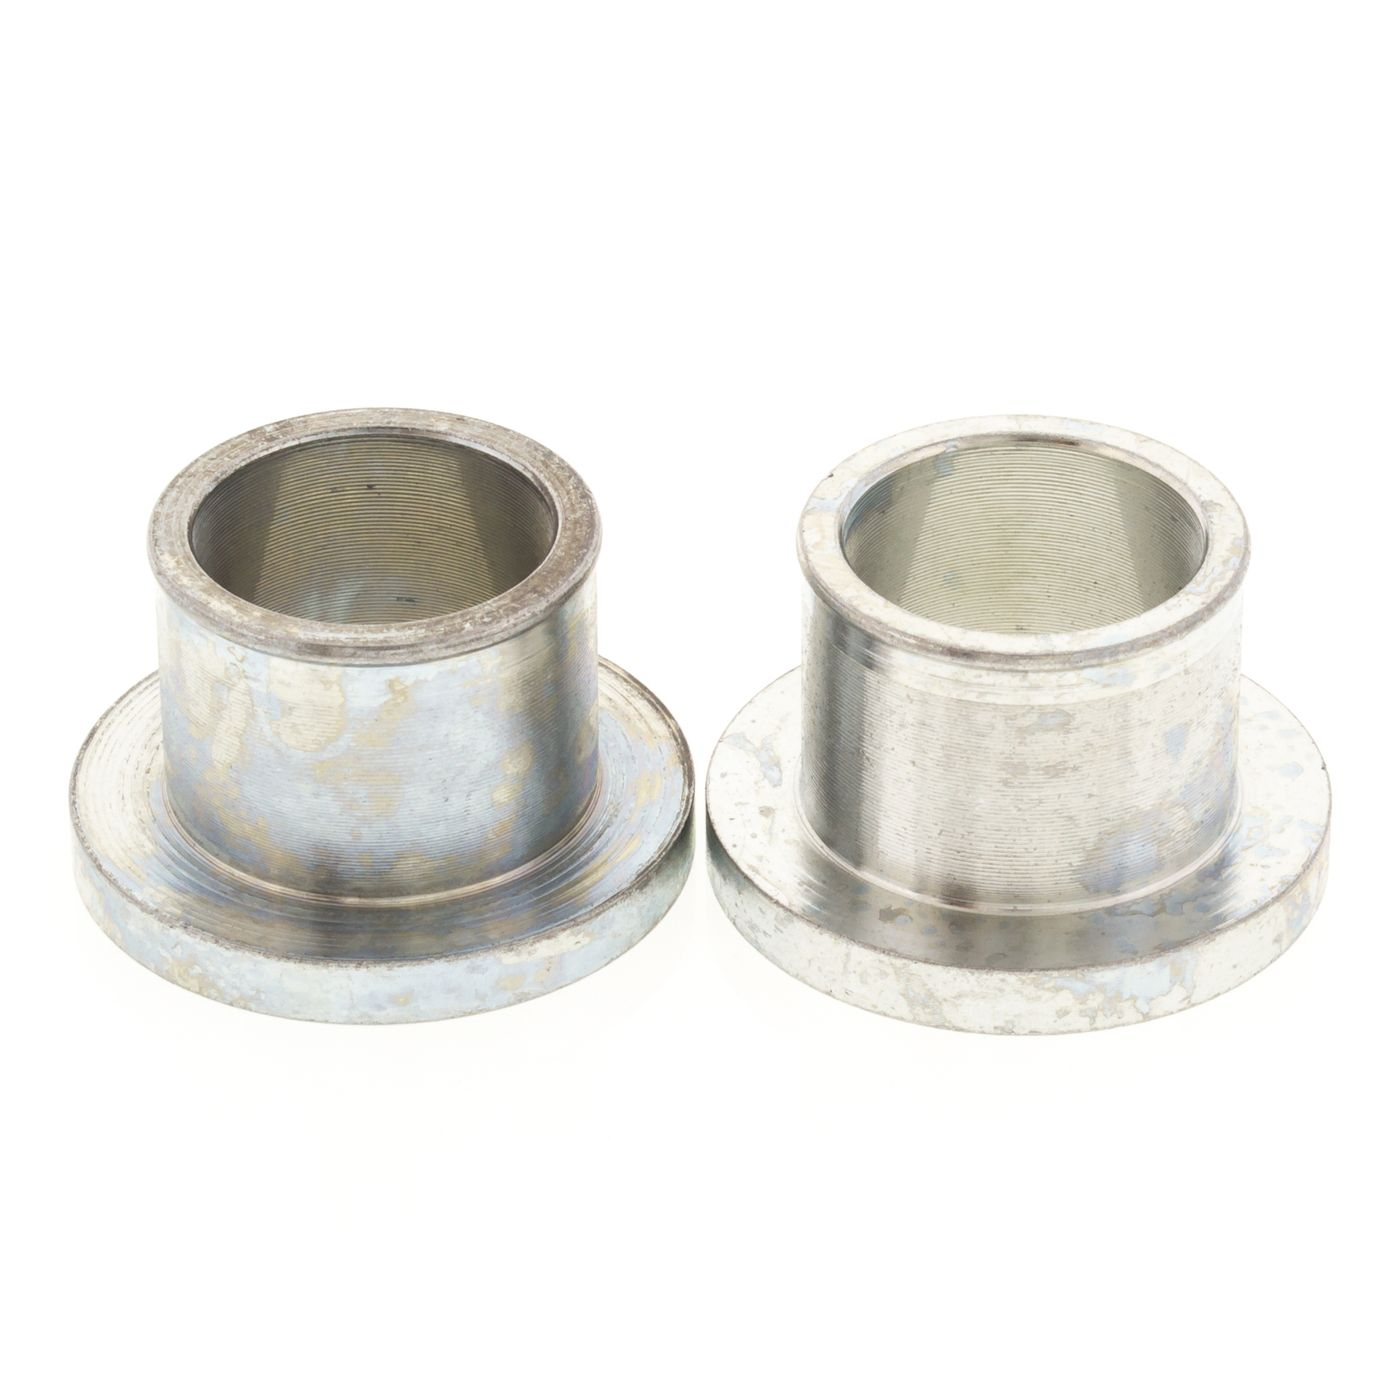 wrp rear wheel spacer kits - WRP111039 image